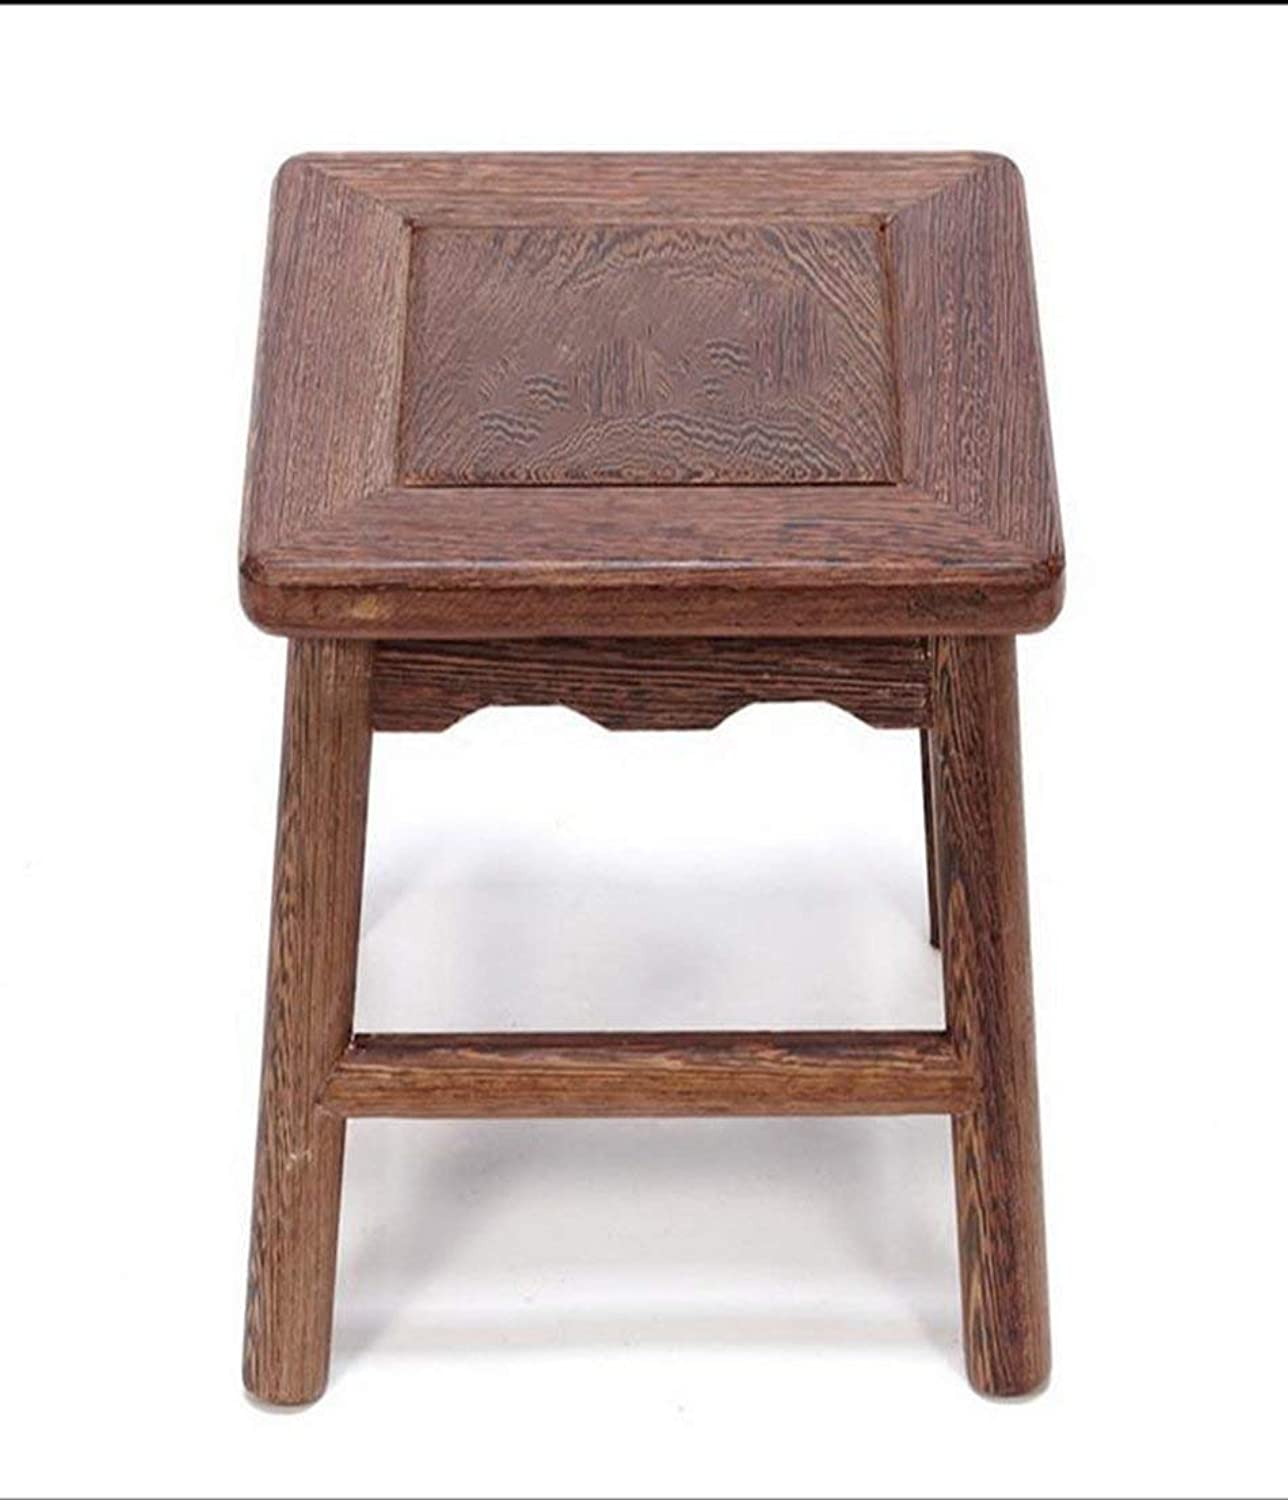 YZH Practical Chair Stool, Vintage Wooden Furniture Small Square Stool,The Best Choice for a Restaurant Cafe Lounge